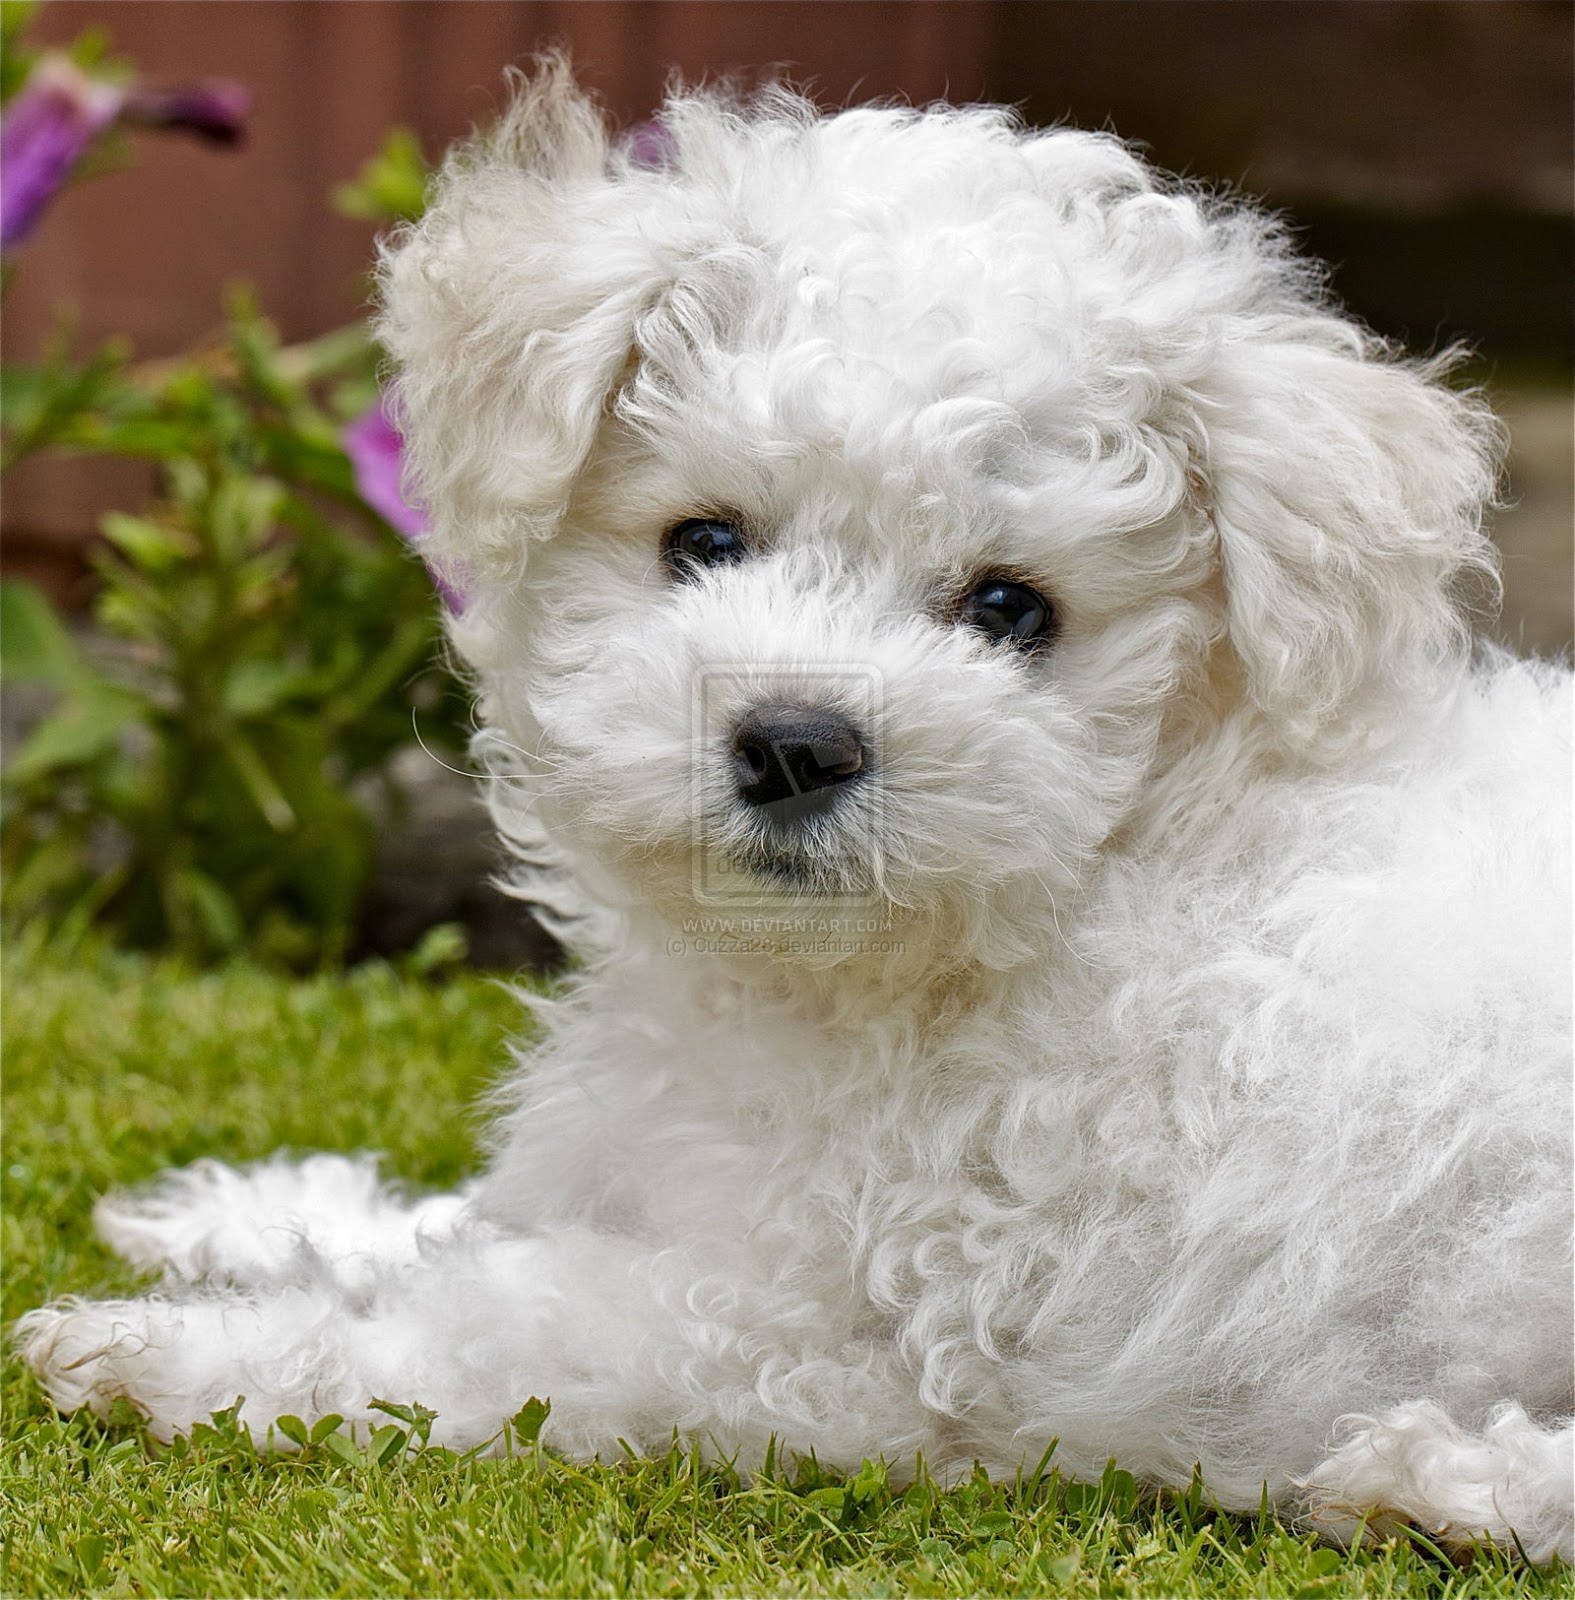 Rules of the Jungle: Bichon Frise puppies